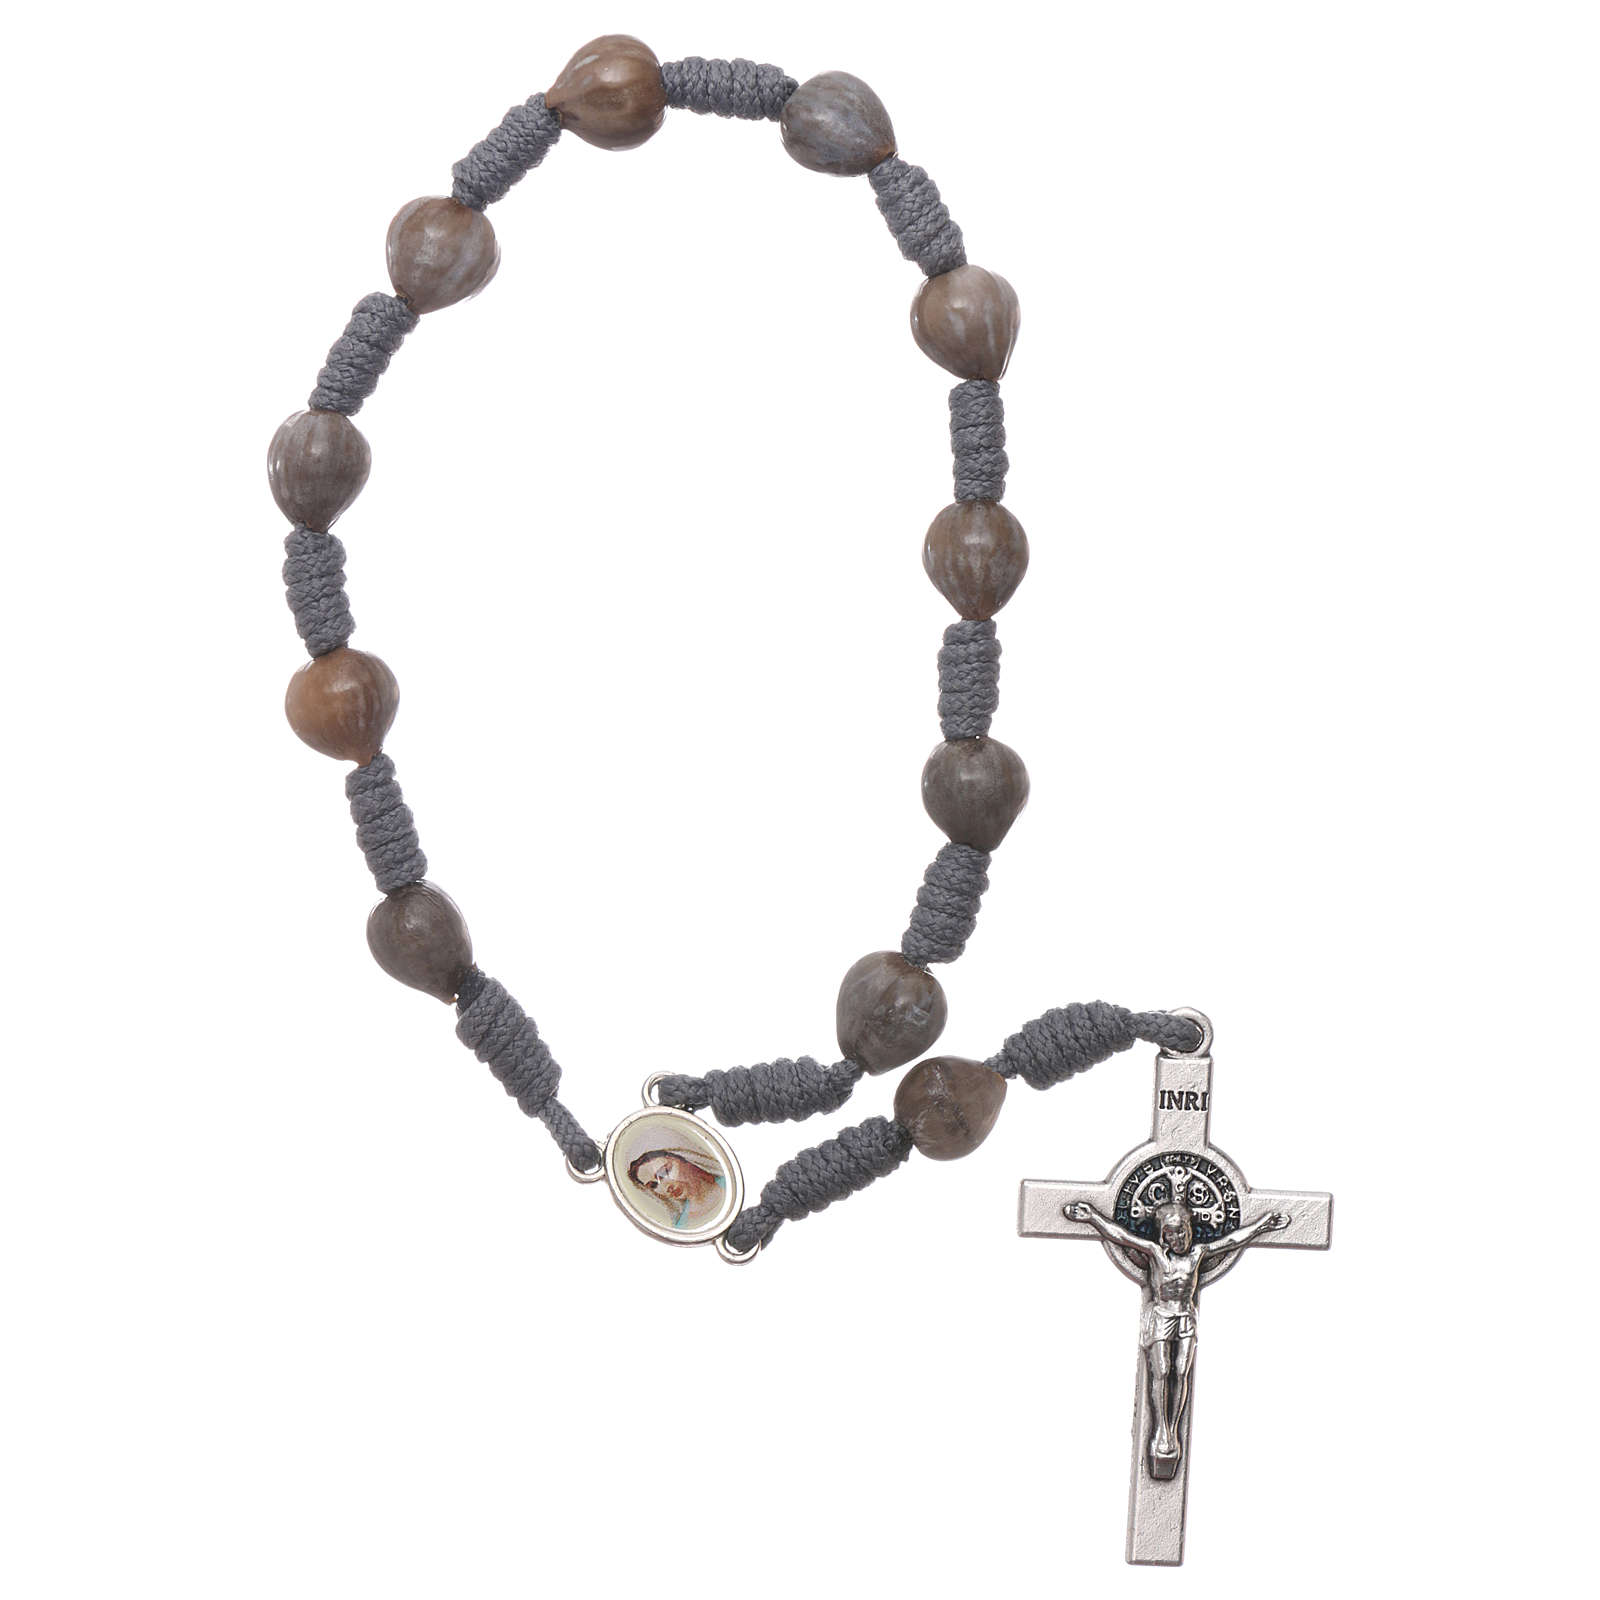 Medjugorje single decade rosary tears of Job with grey rope 4